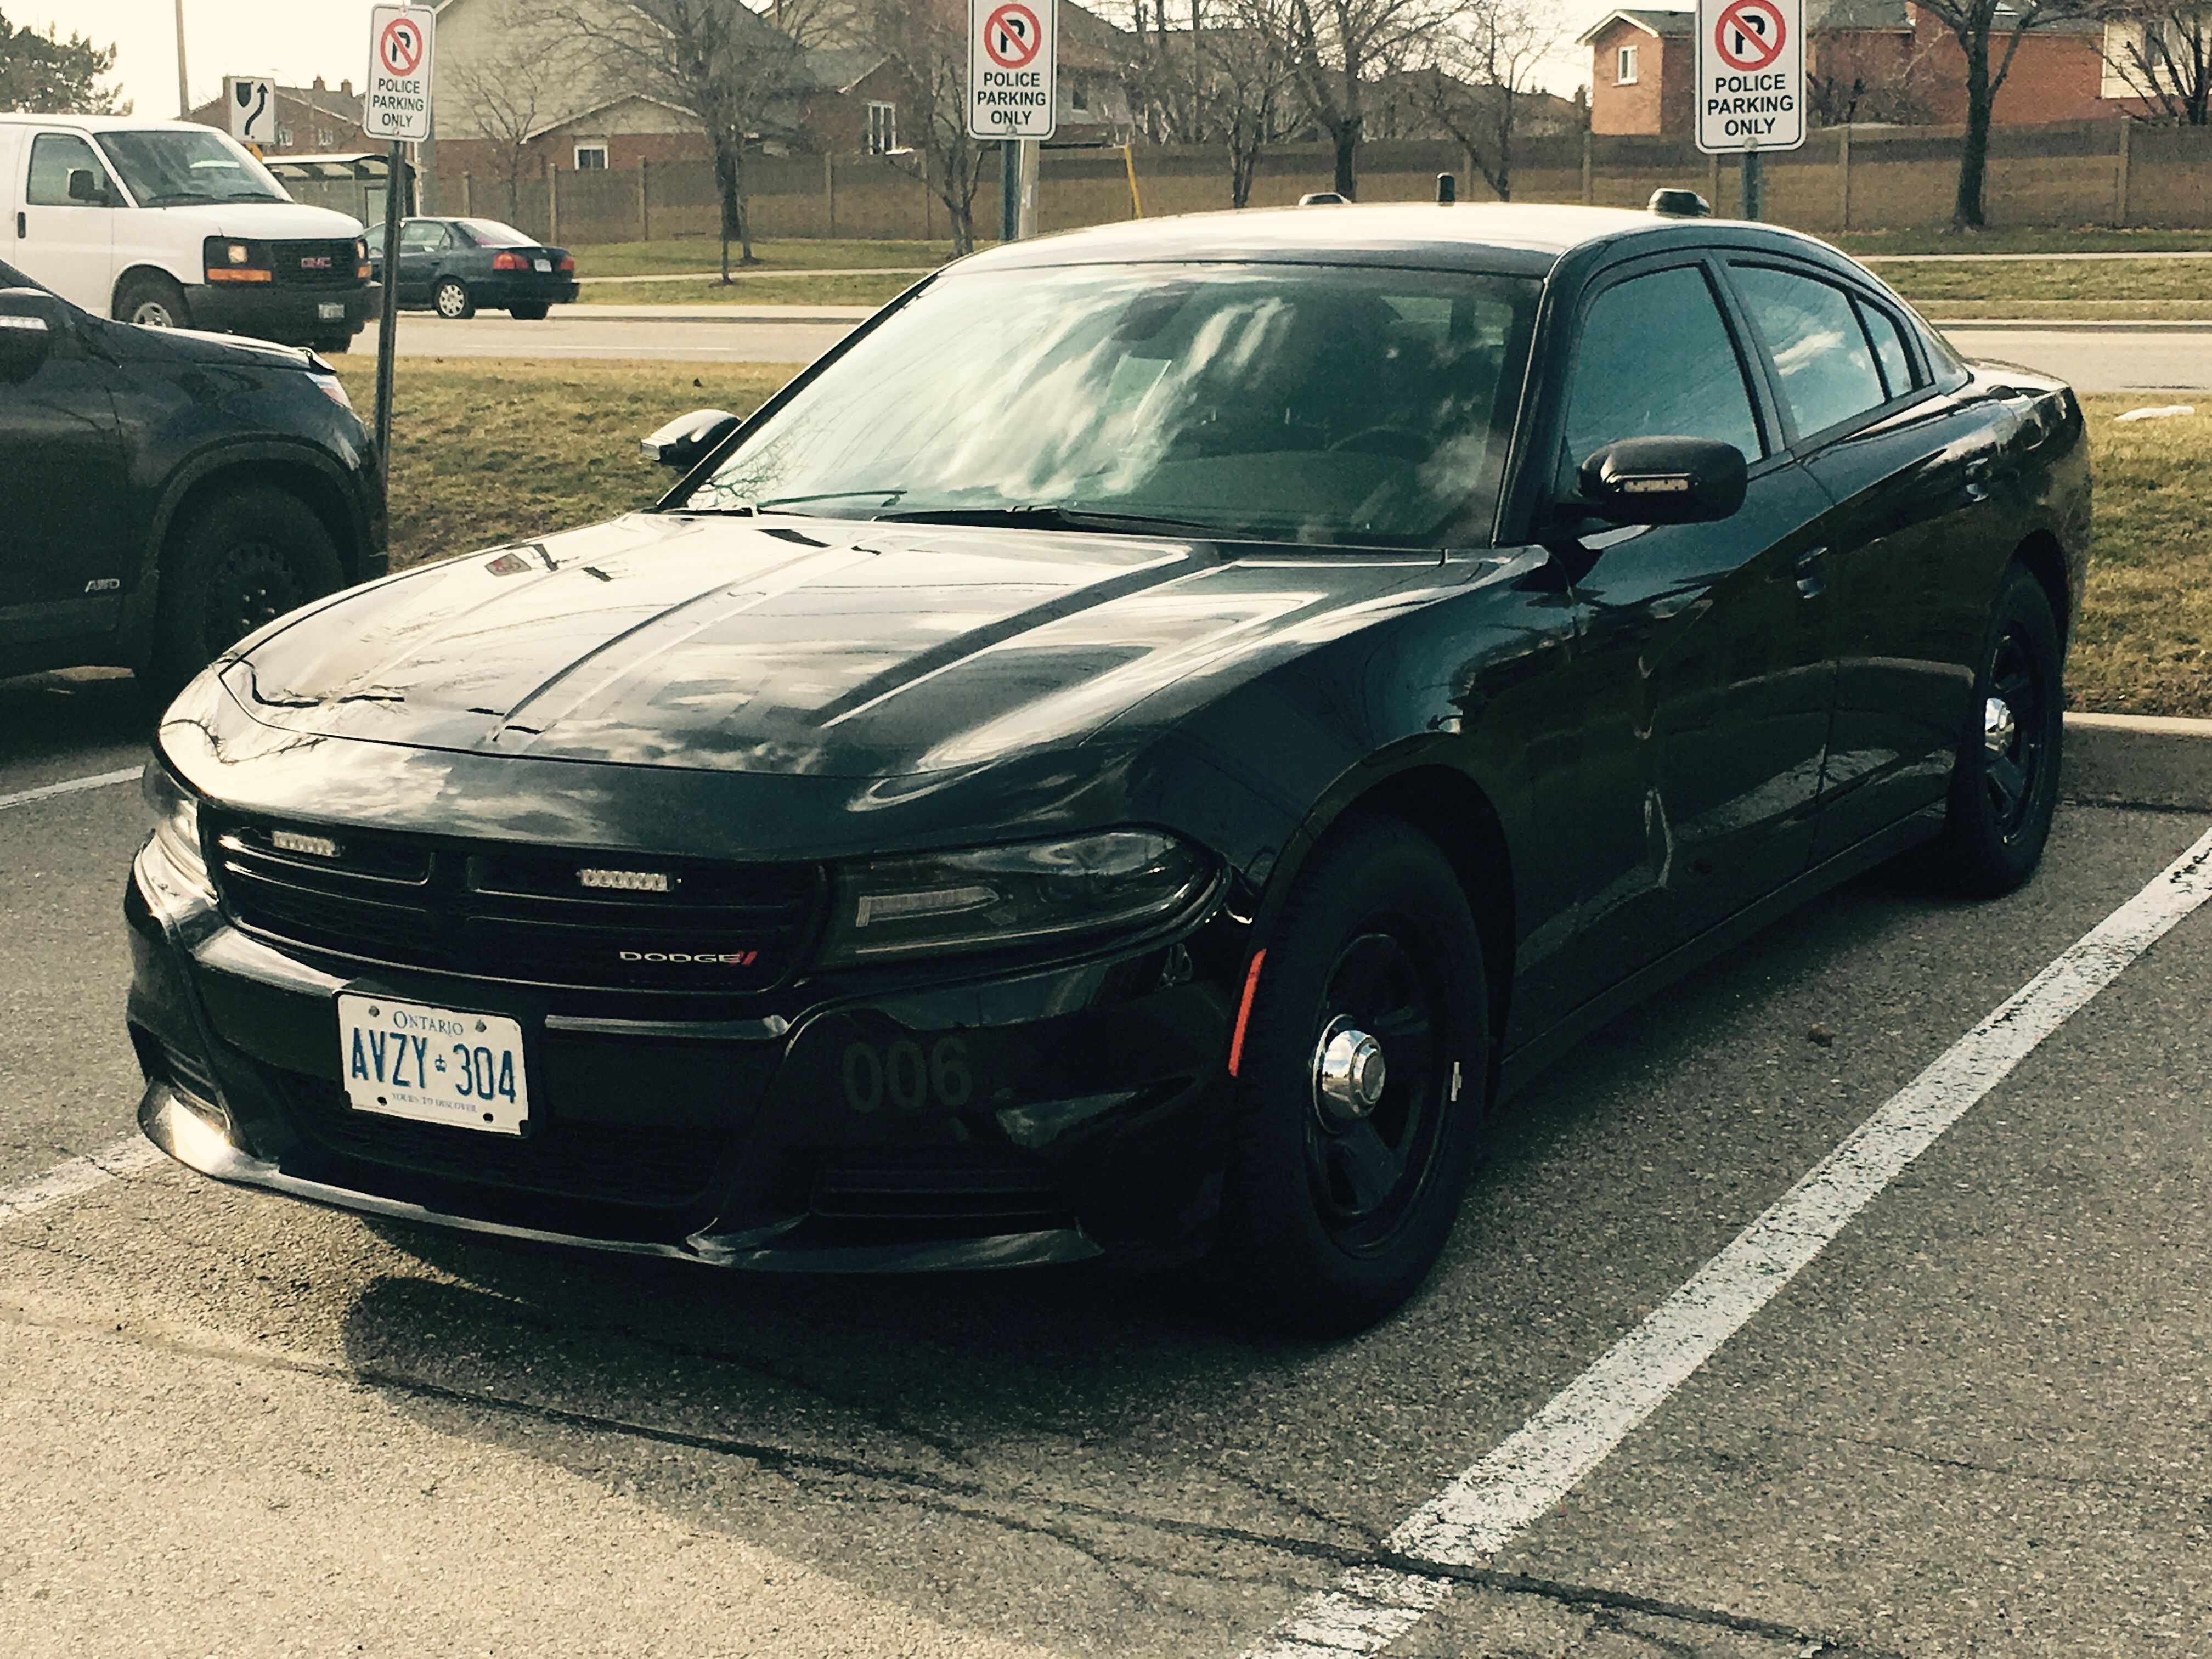 Charger Police Ghost Car Police Cars Police Truck Black Dodge Charger